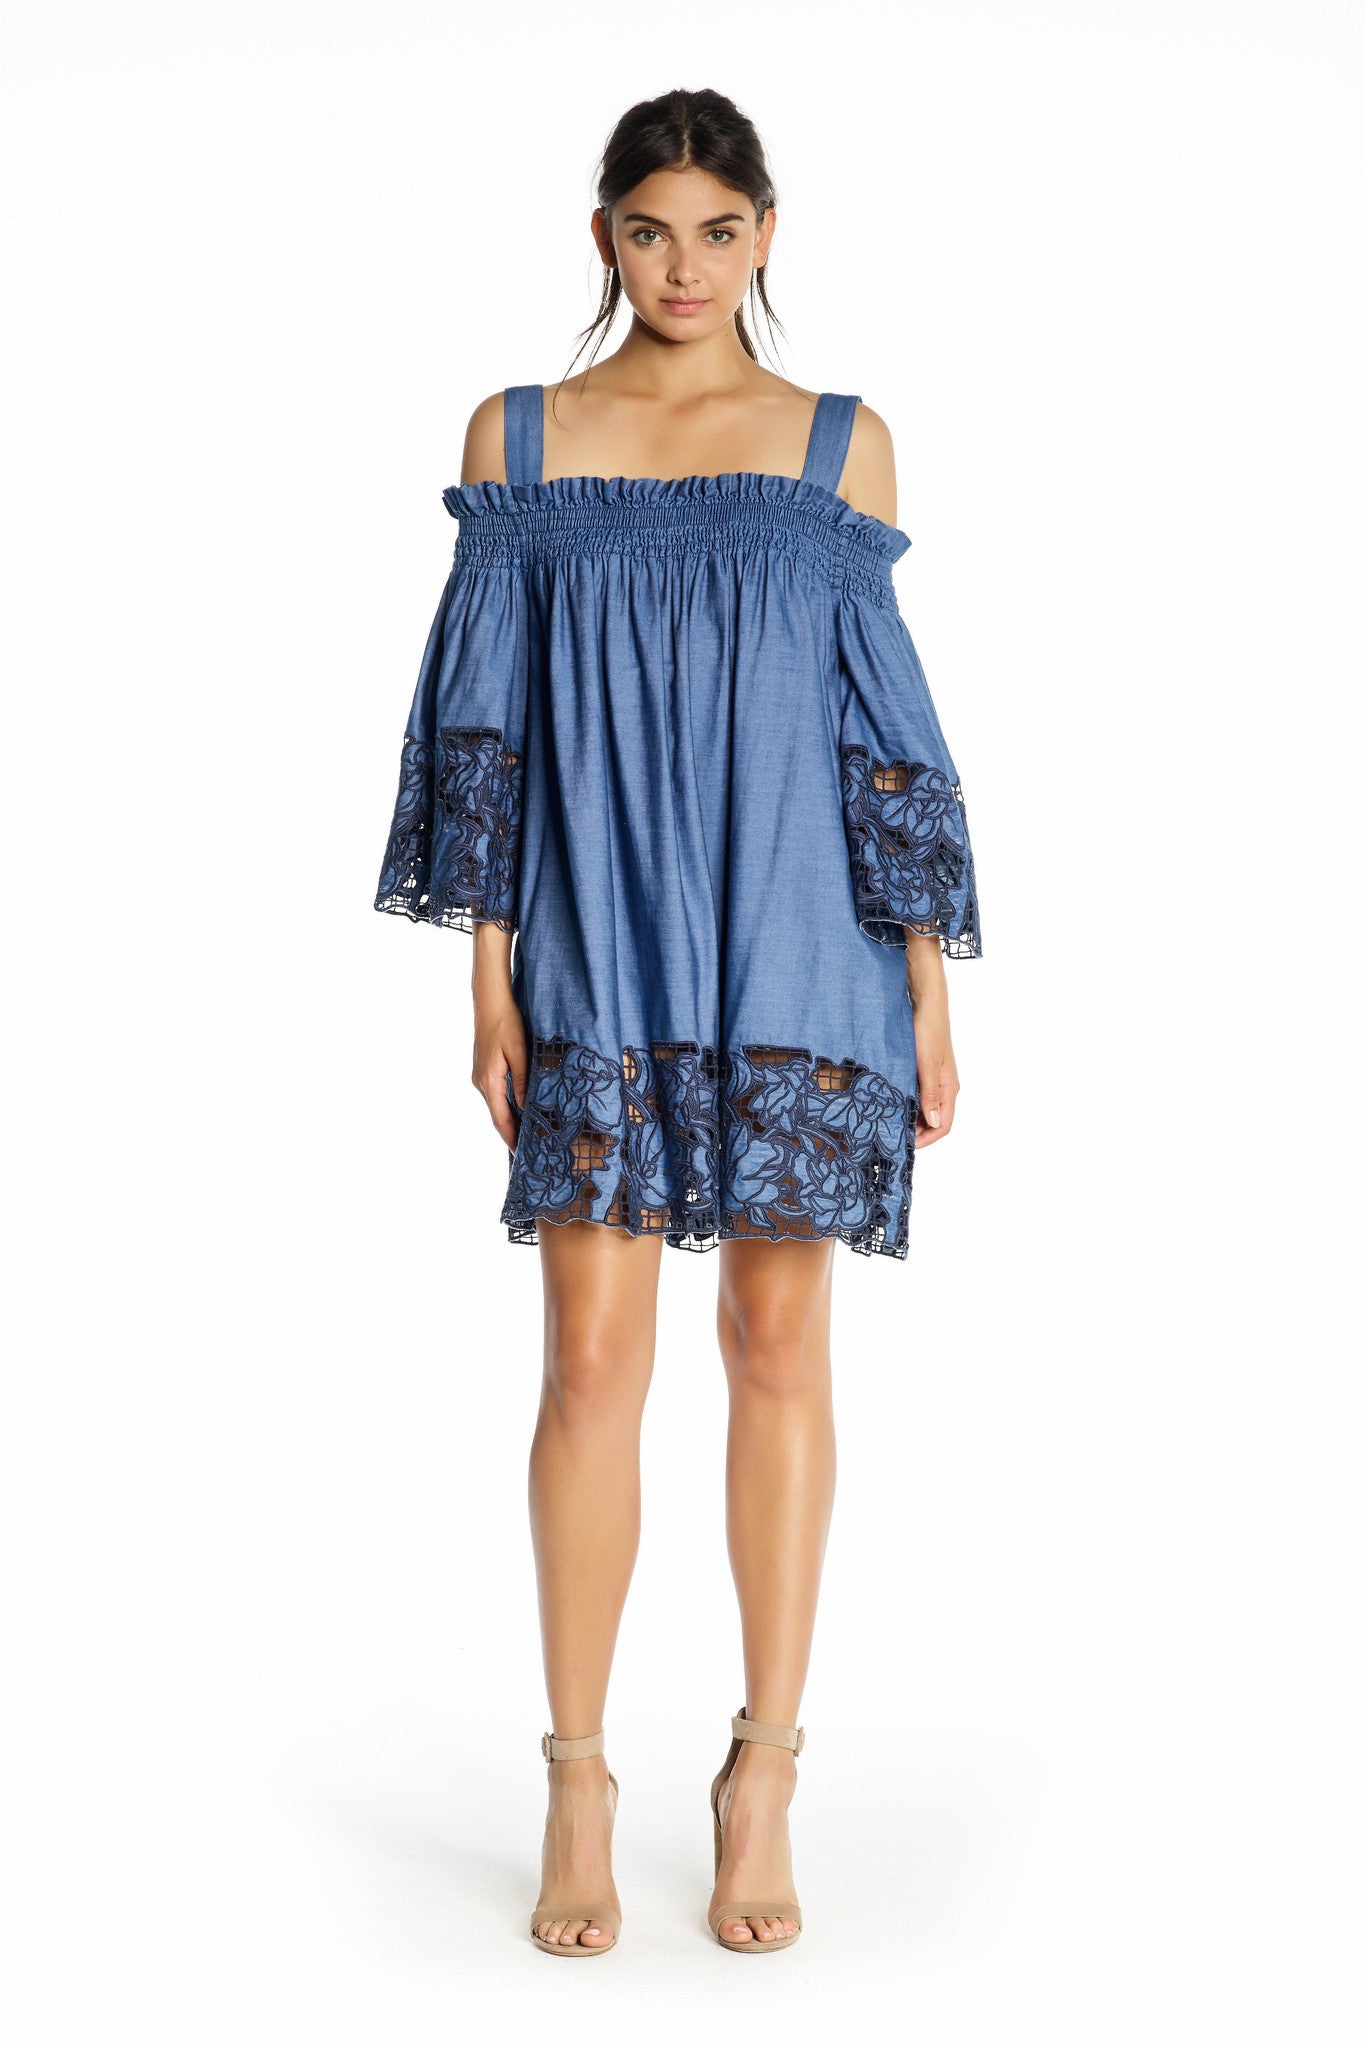 EMBROIDERED CHAMBRAY DRESS DRESSES by KENDALL + KYLIE